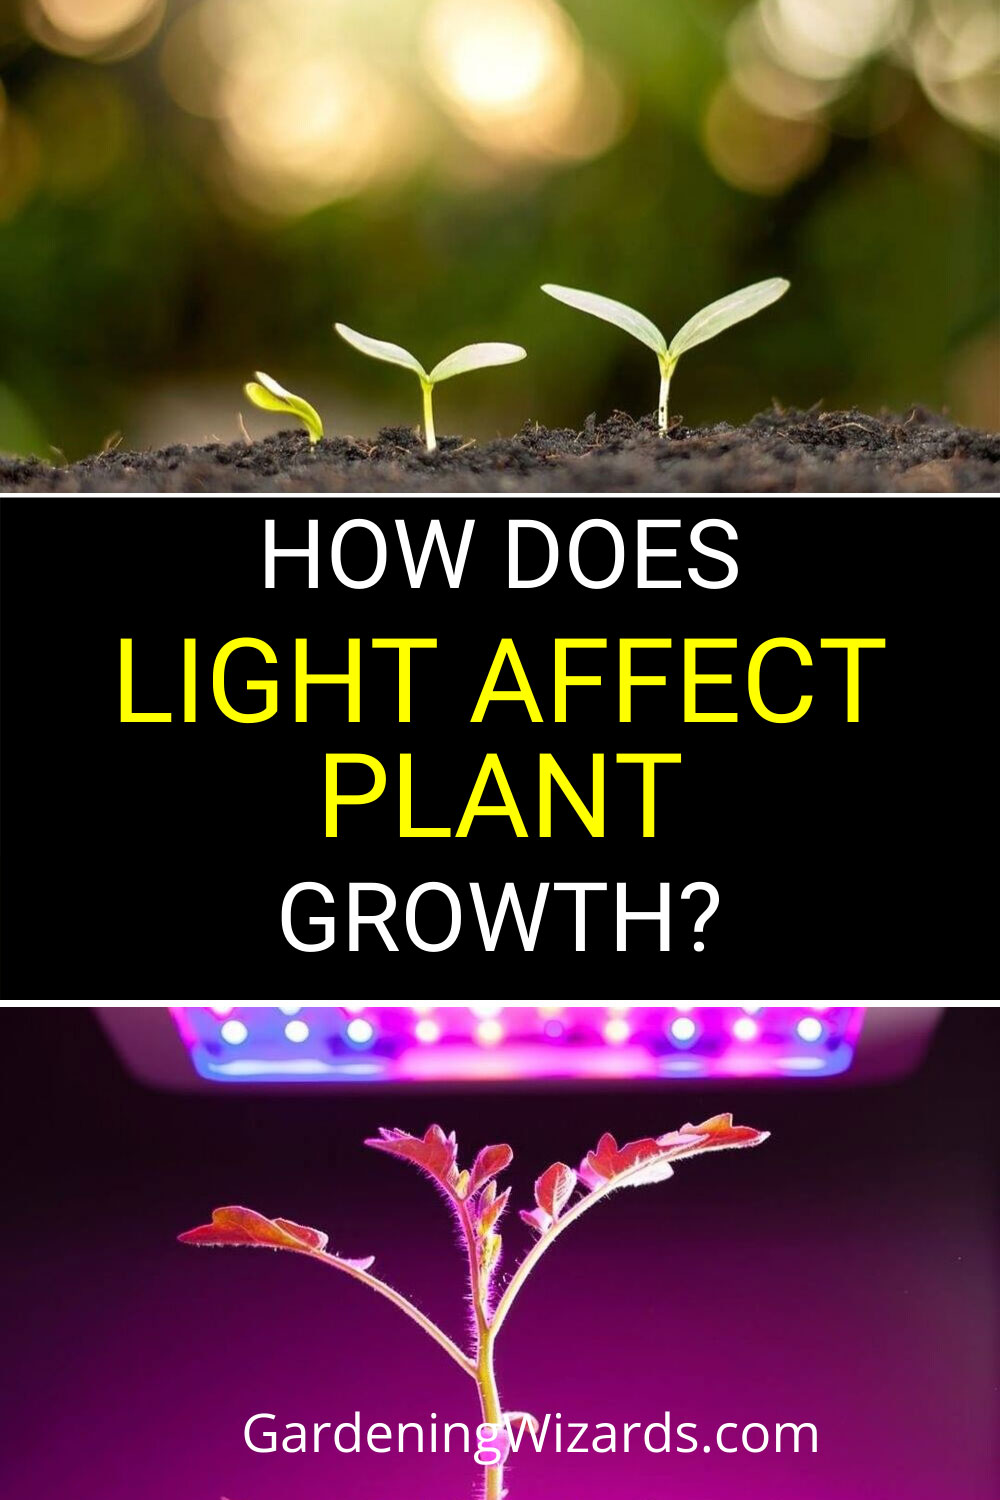 Light Affect Plant Growth